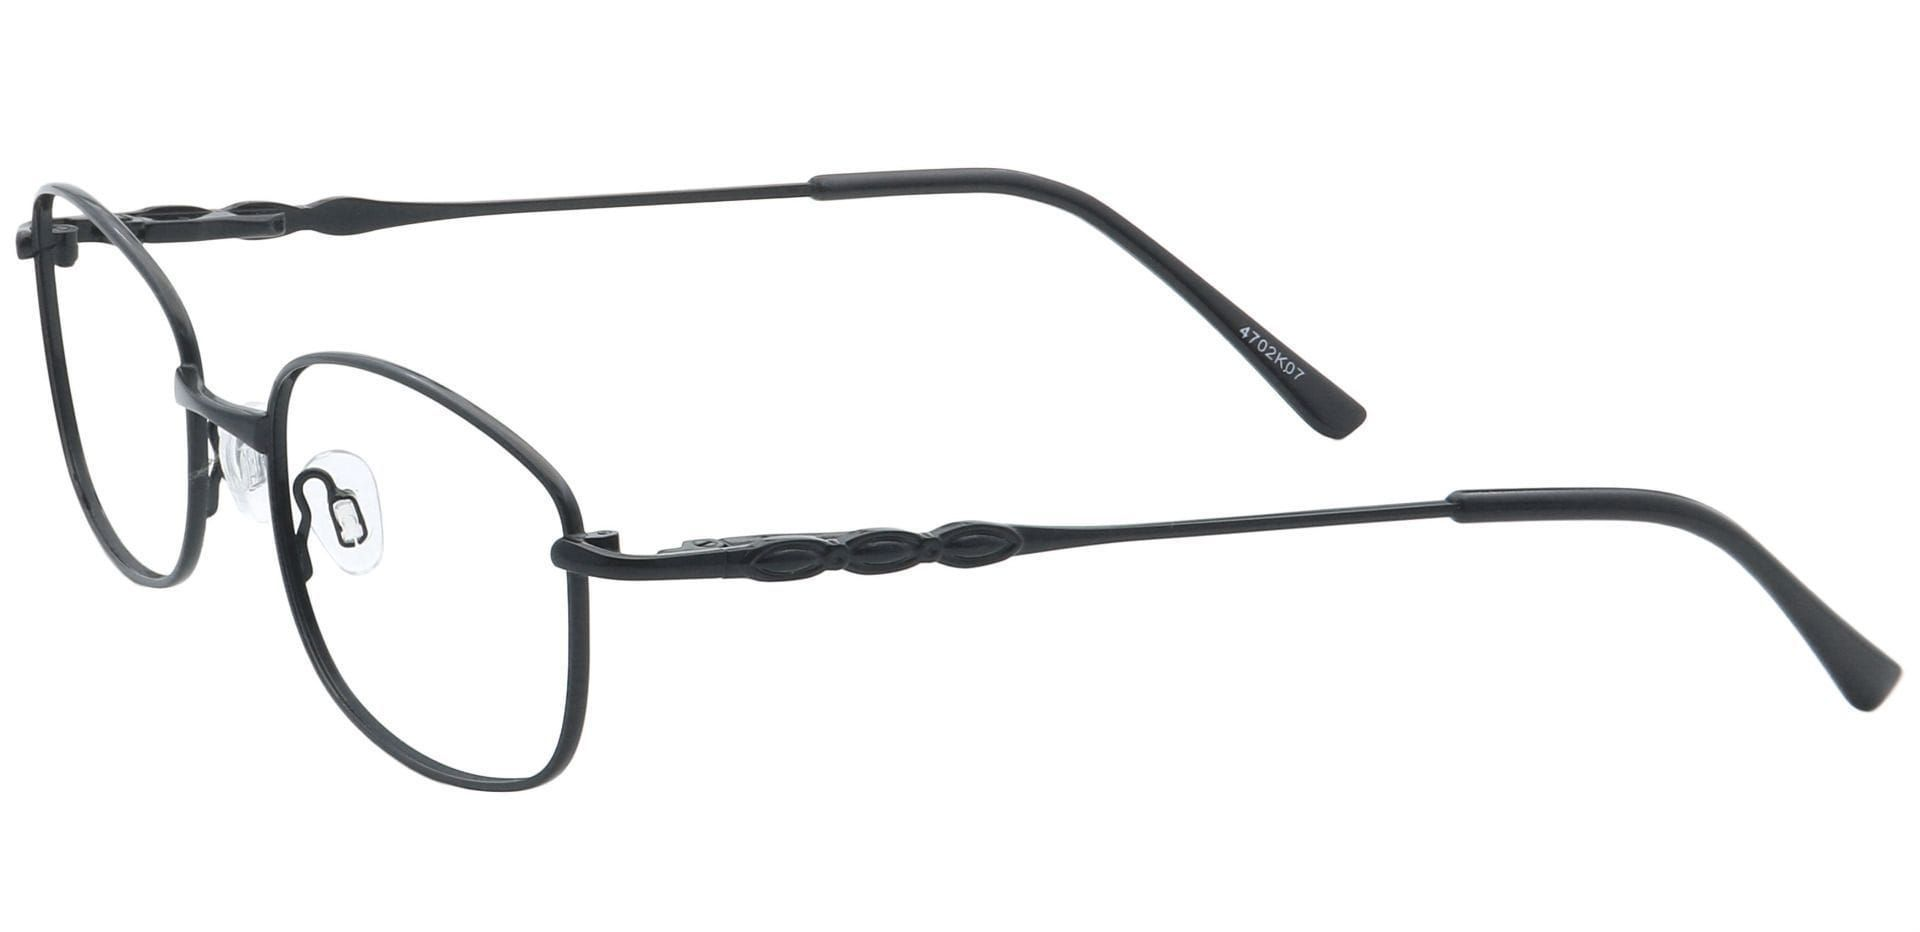 Halley Oval Non-Rx Glasses - Black